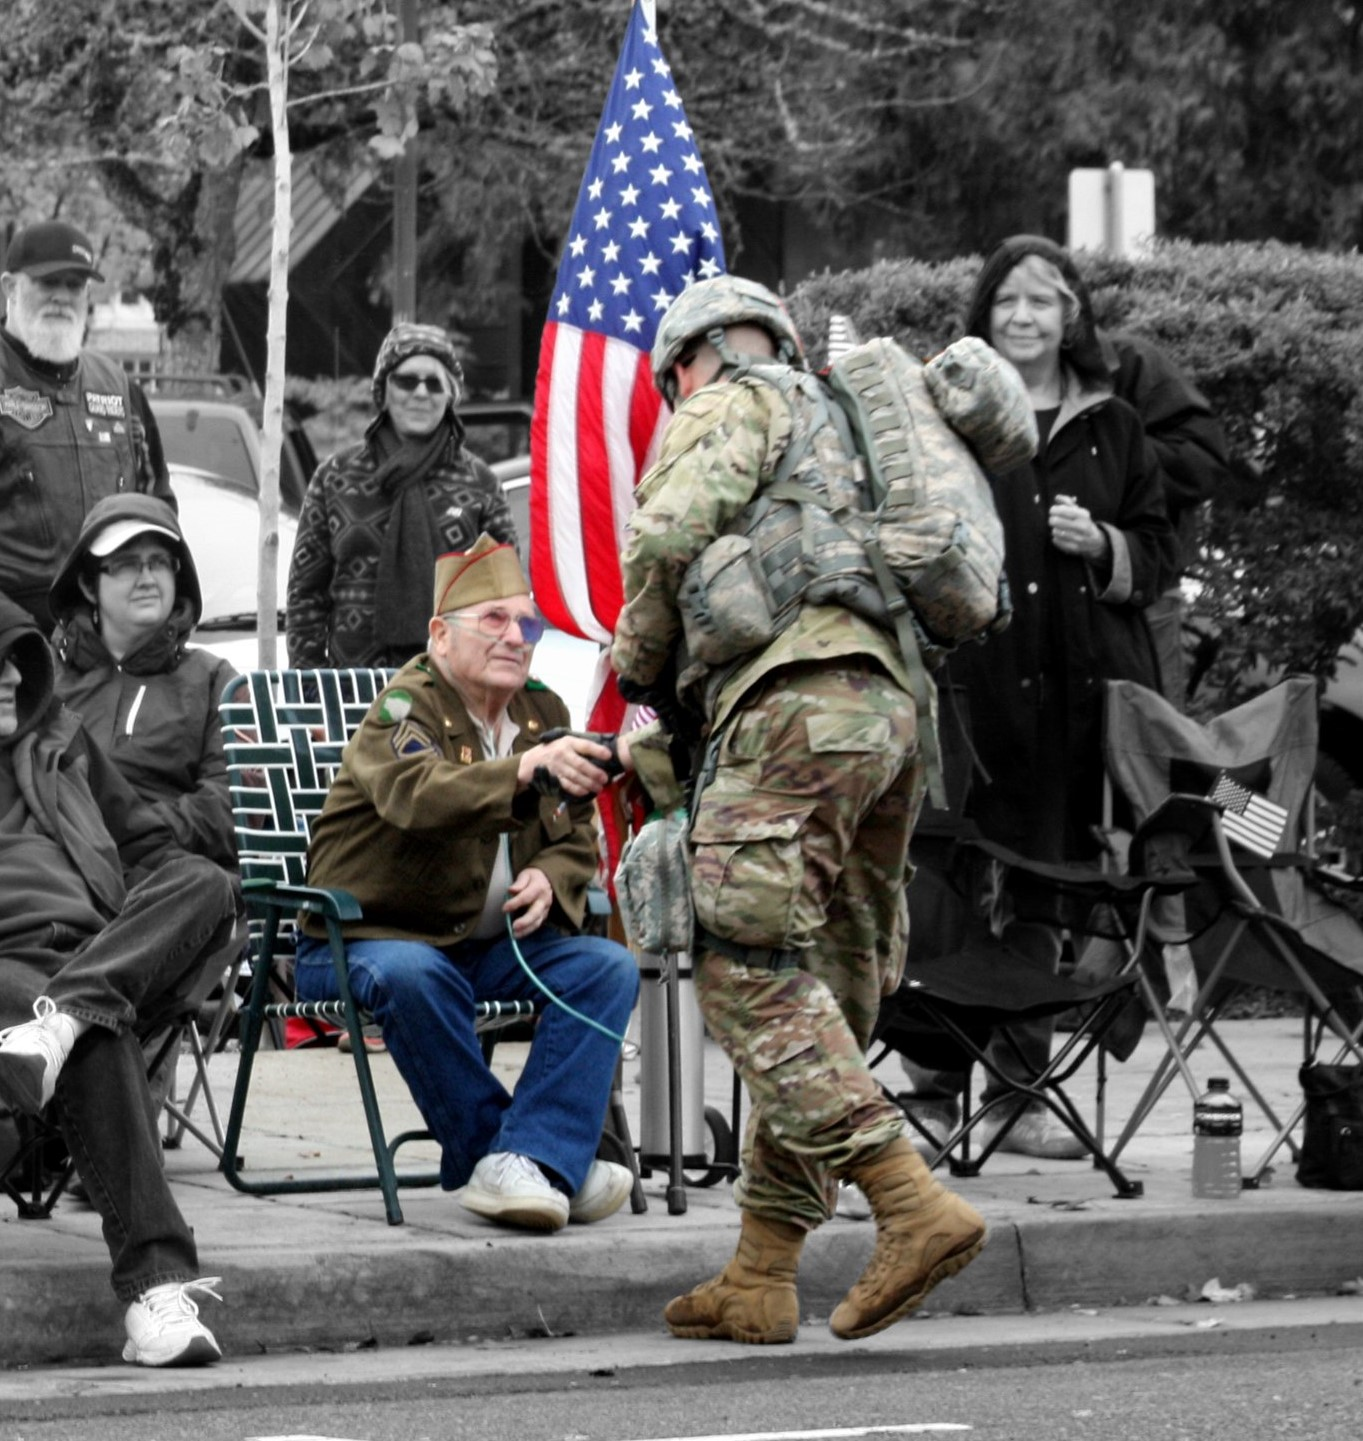 Photo of two veterans greeting each other.